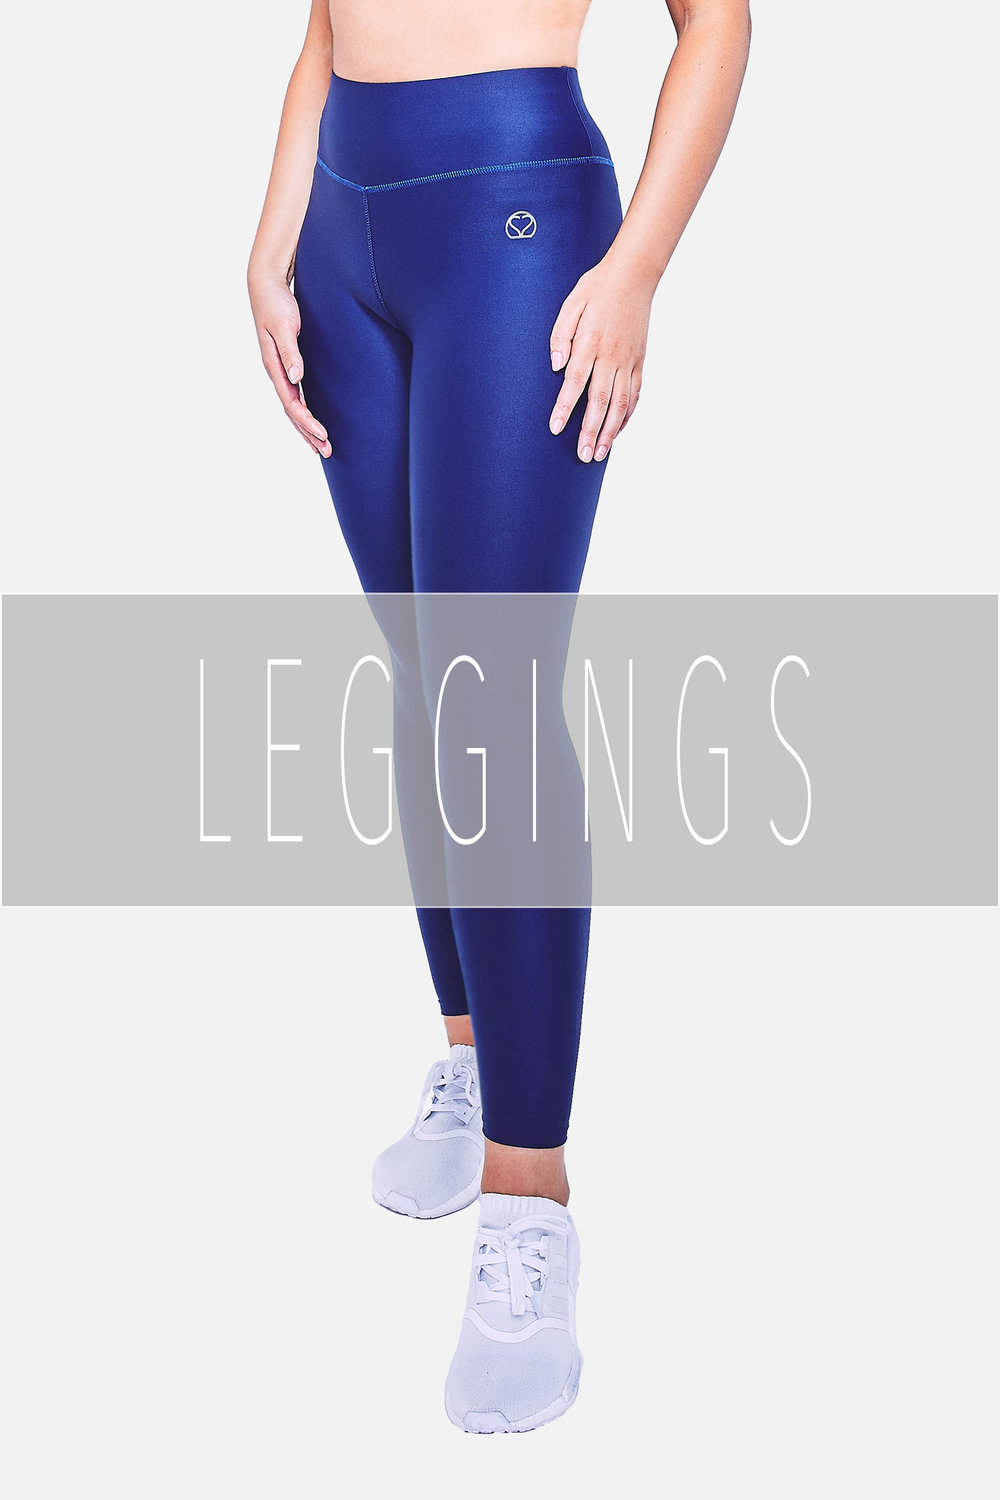 navy_leggings_product_section.jpg